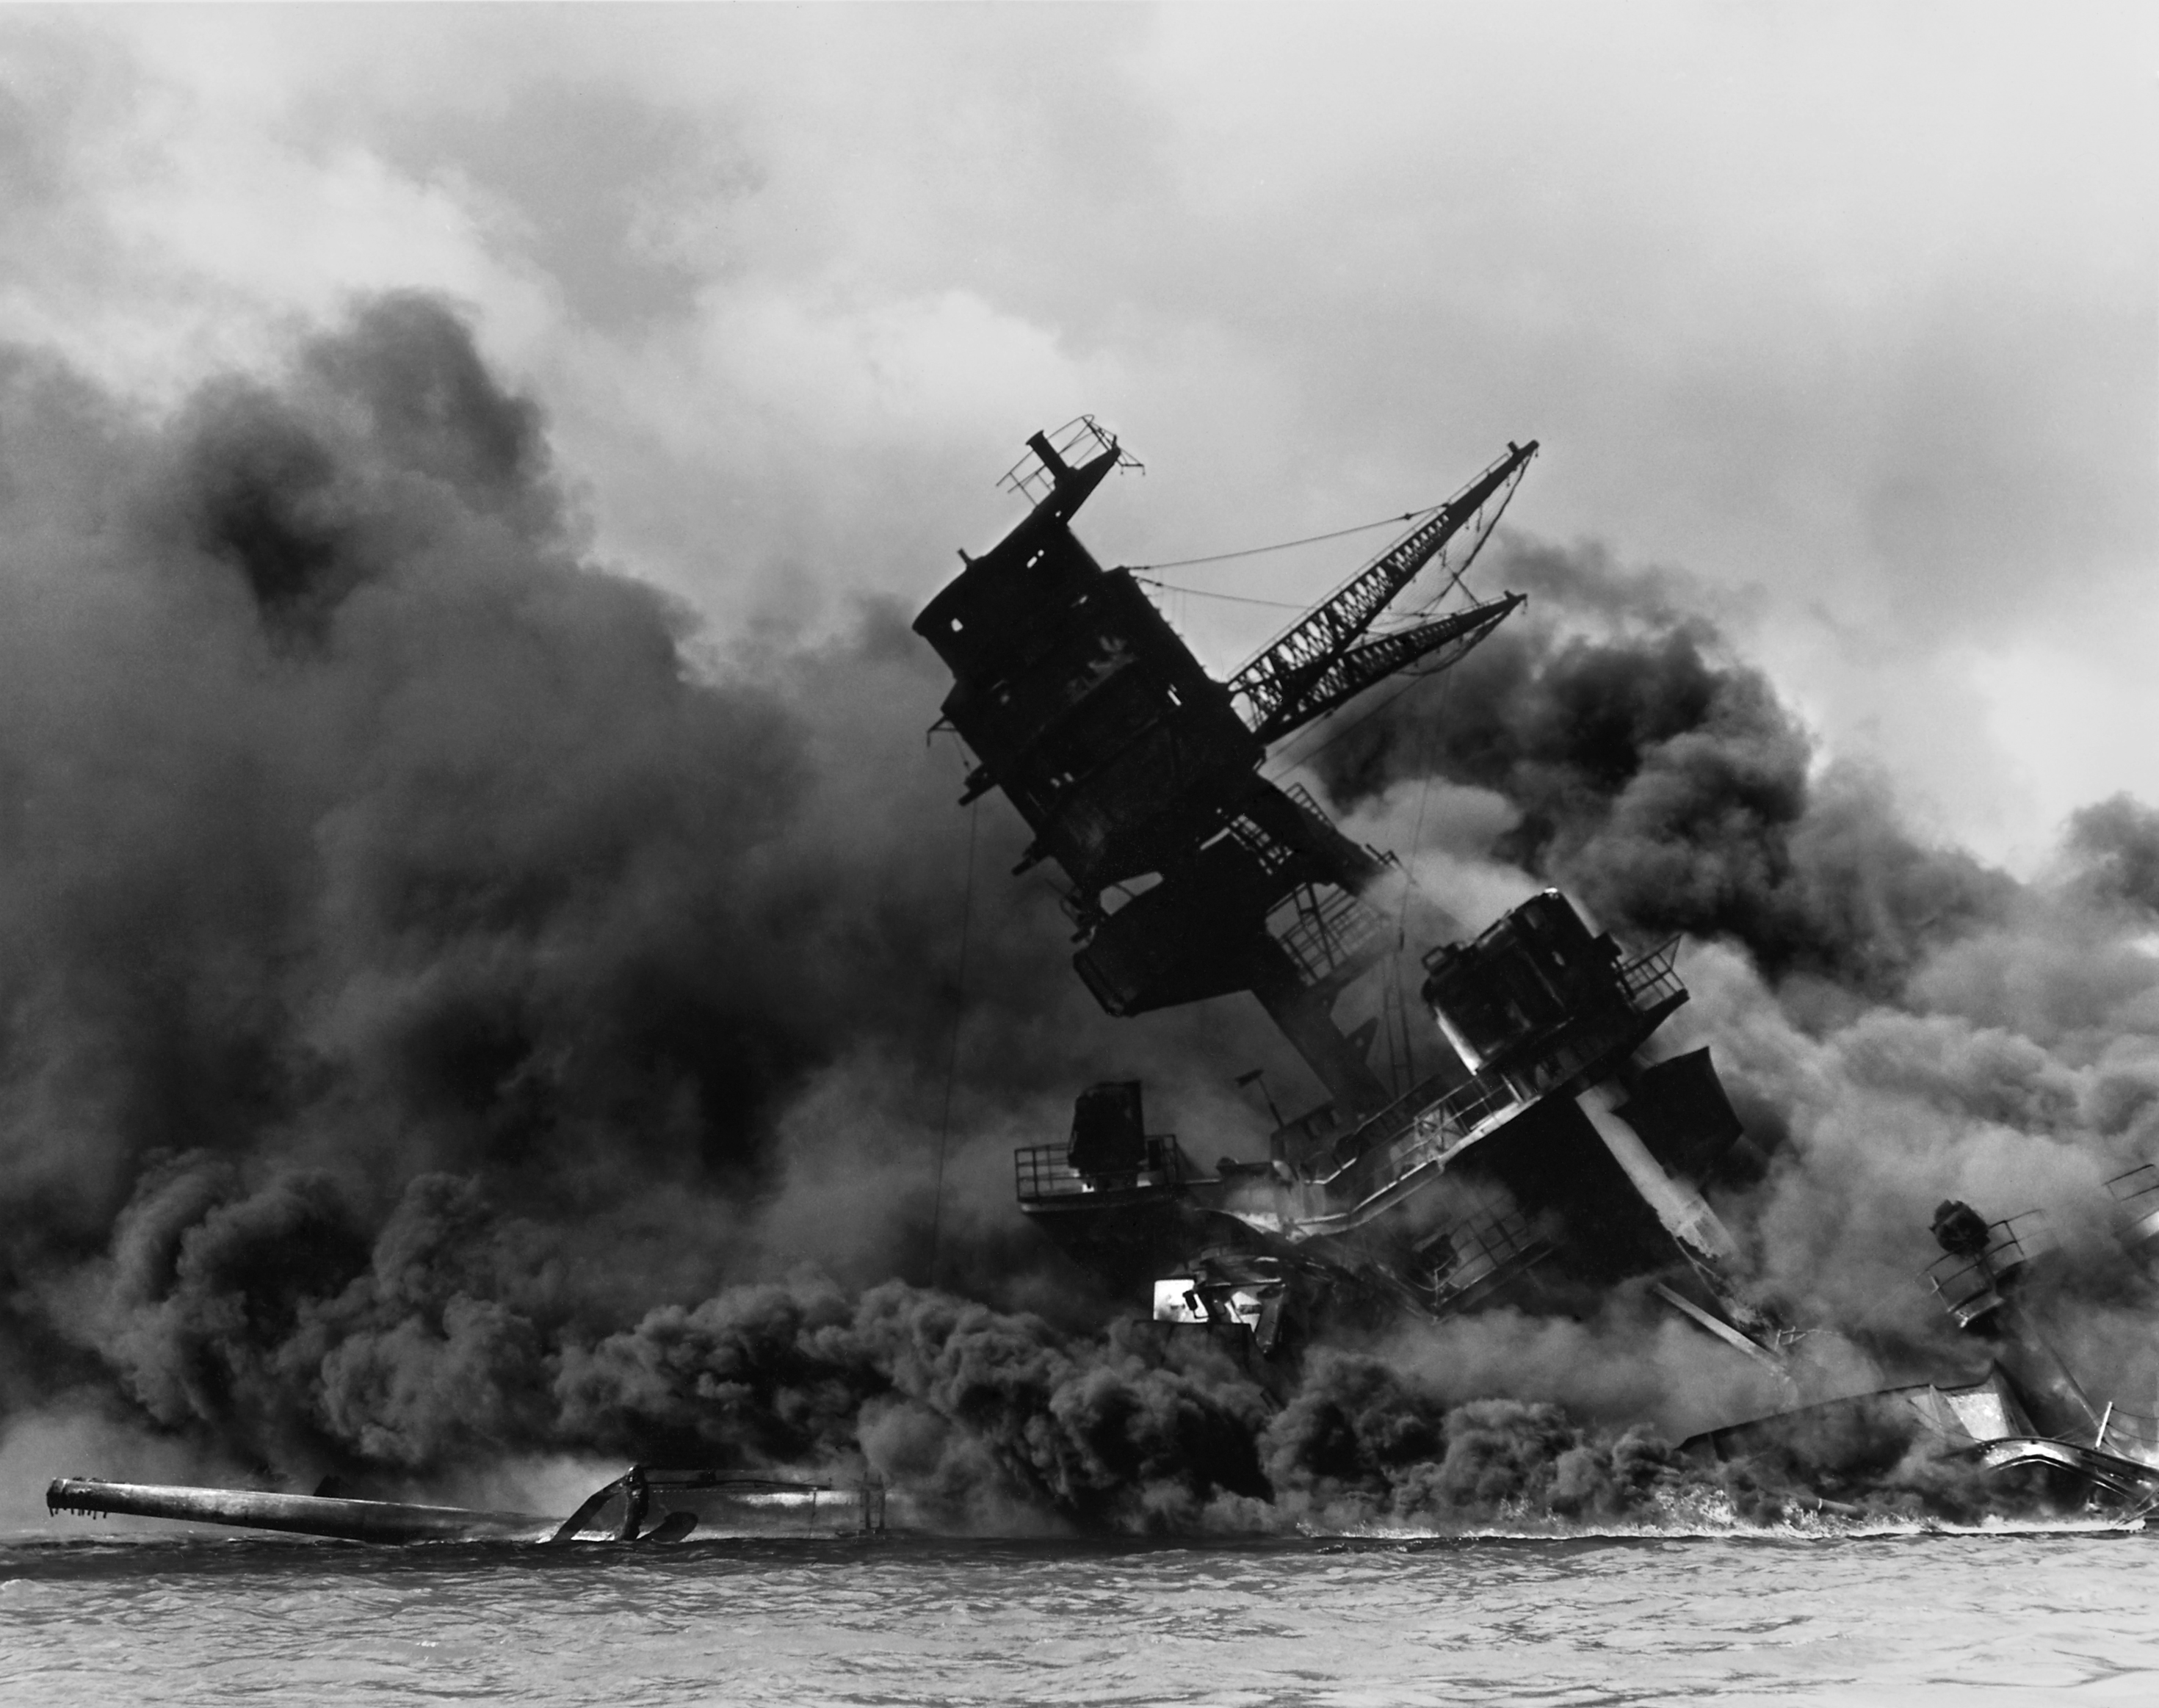 mass hysteria in america after the pearl harbor attack during world war ii Naval photograph documenting the japanese attack on pearl harbor, hawaii which initiated us participation in world war ii navy's caption: battleship row is a mass of flames and smoke, with uss oklahoma in the foreground, after the japanese attack on pearl harbor on dec 7, 1941.